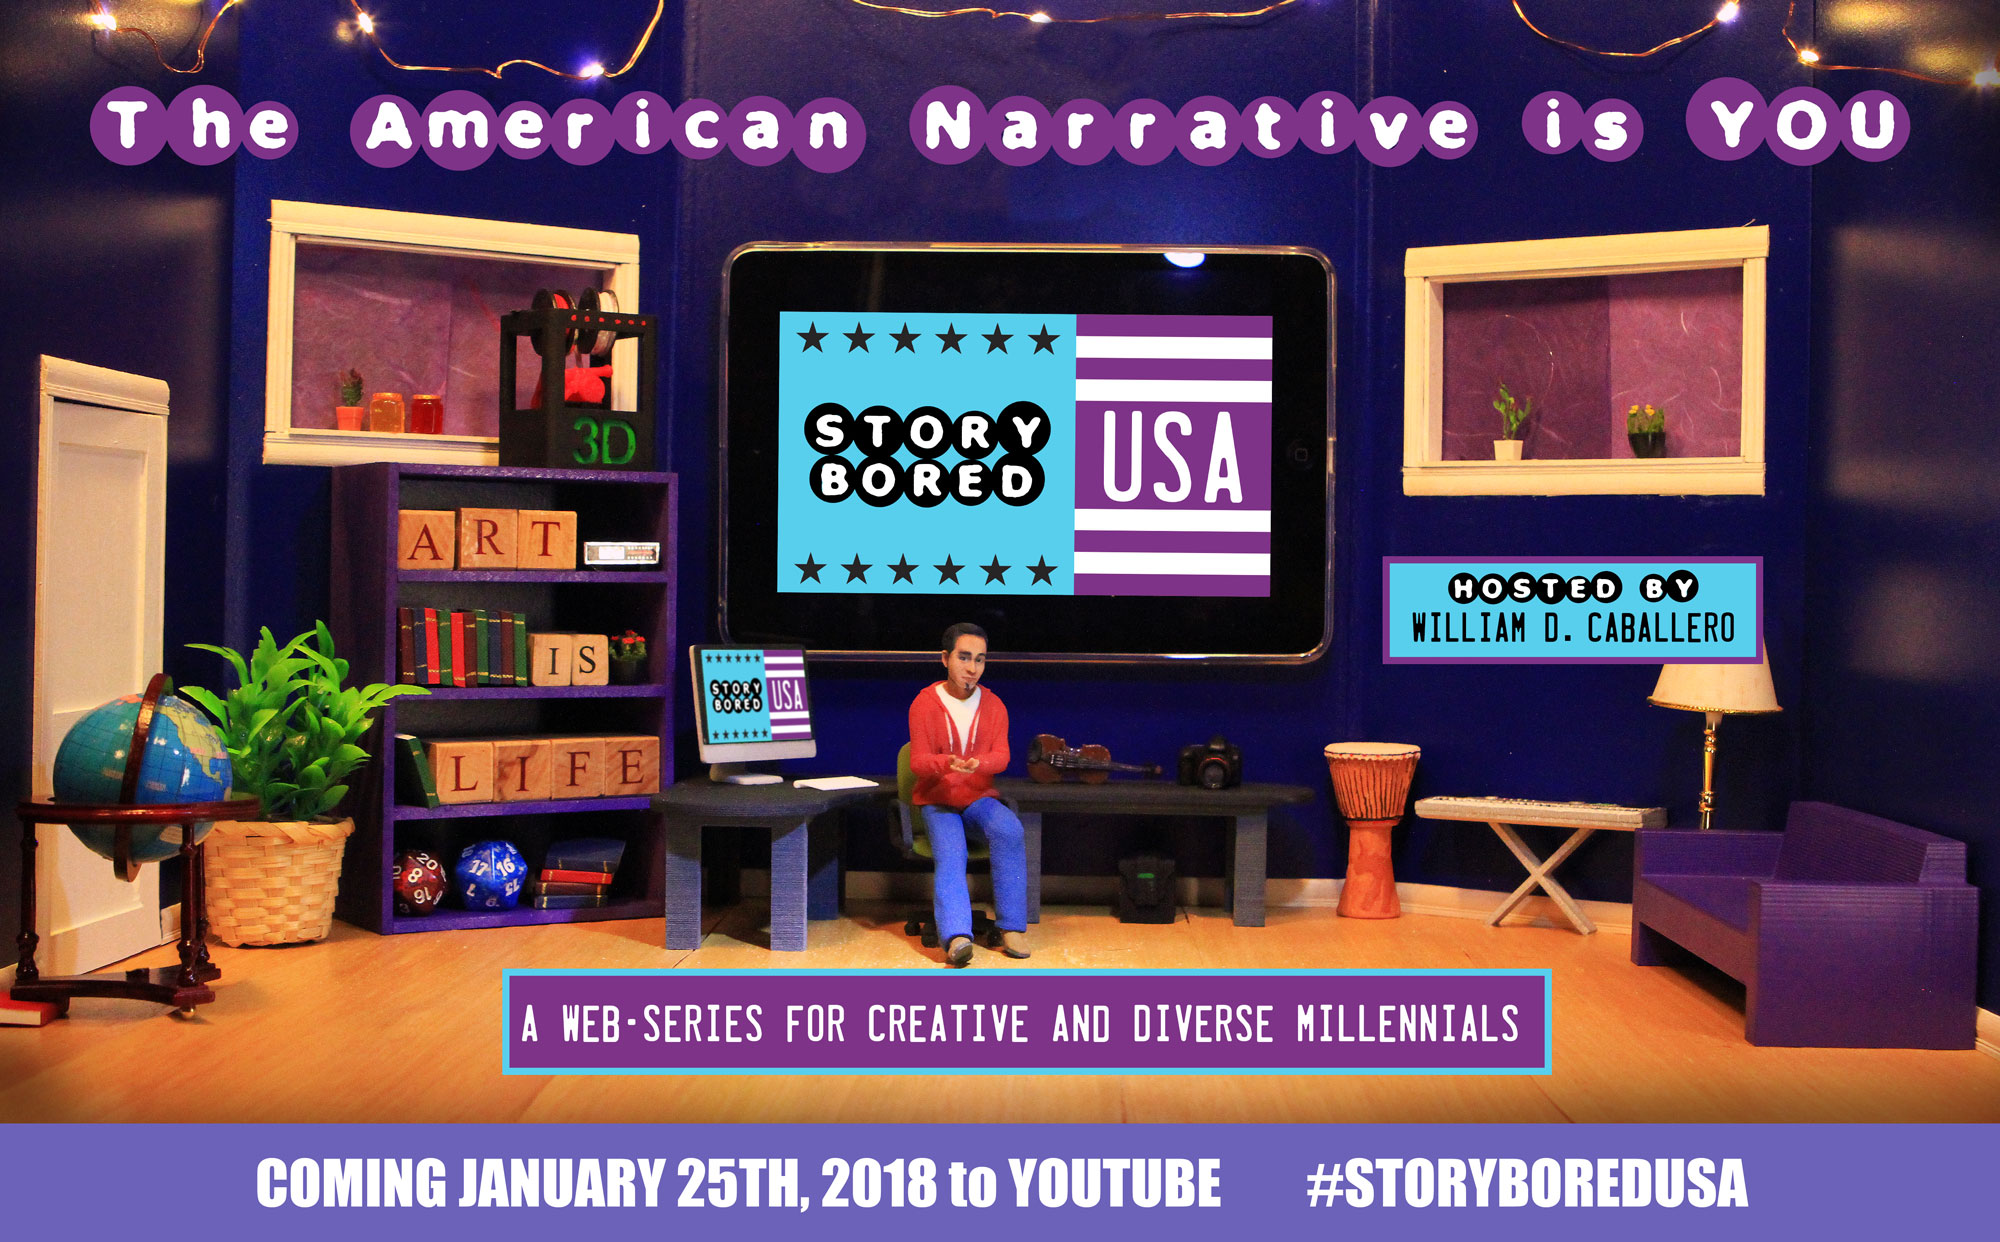 JANUARY 2018: STORYBORED USA, an educational and entertaining web-series, aimed at empowering diverse youth and millennials to tell their stories through creative arts and media.    Click here to learn more about StoryBored USA